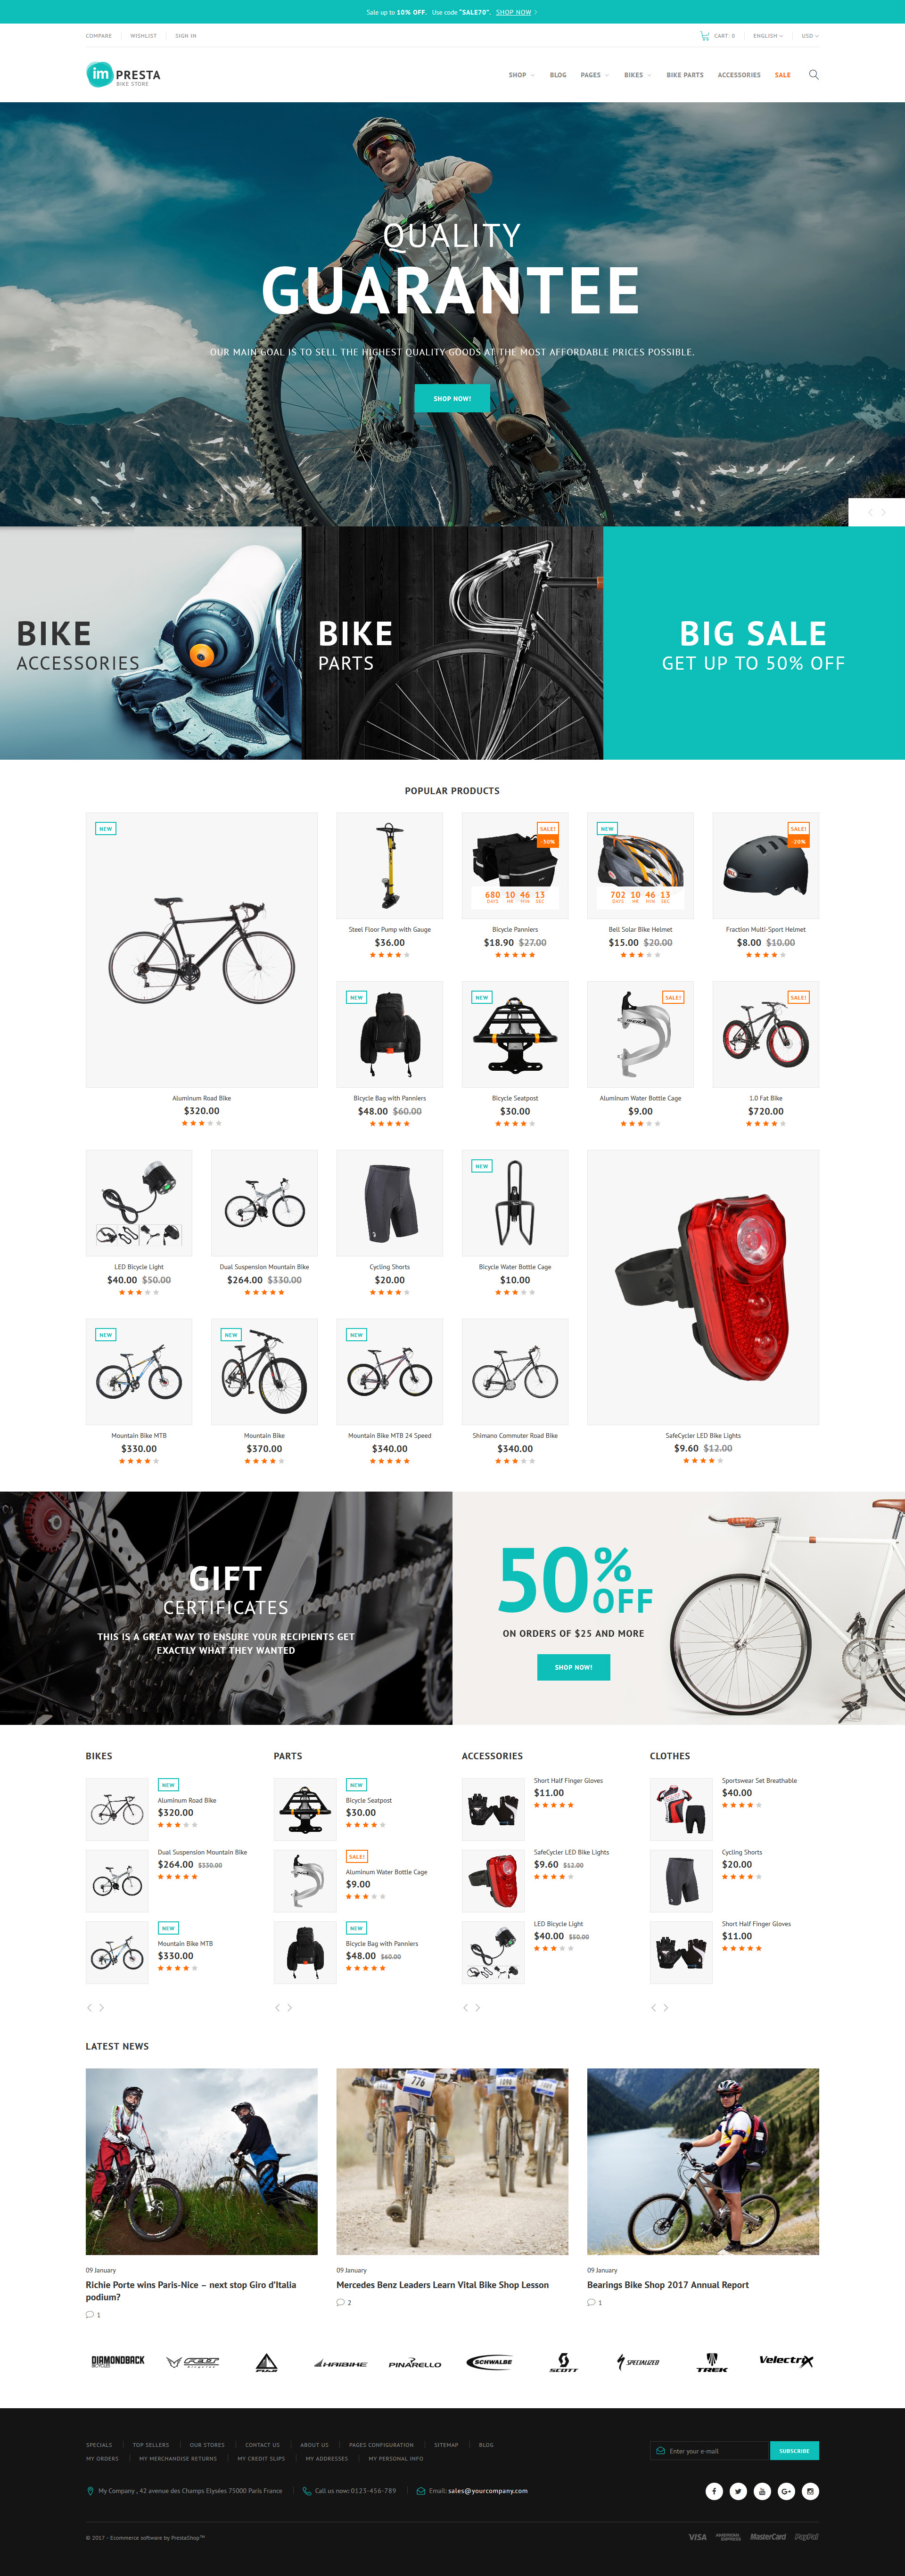 """Impresta - Bike Store"" thème PrestaShop adaptatif #64382 - screenshot"